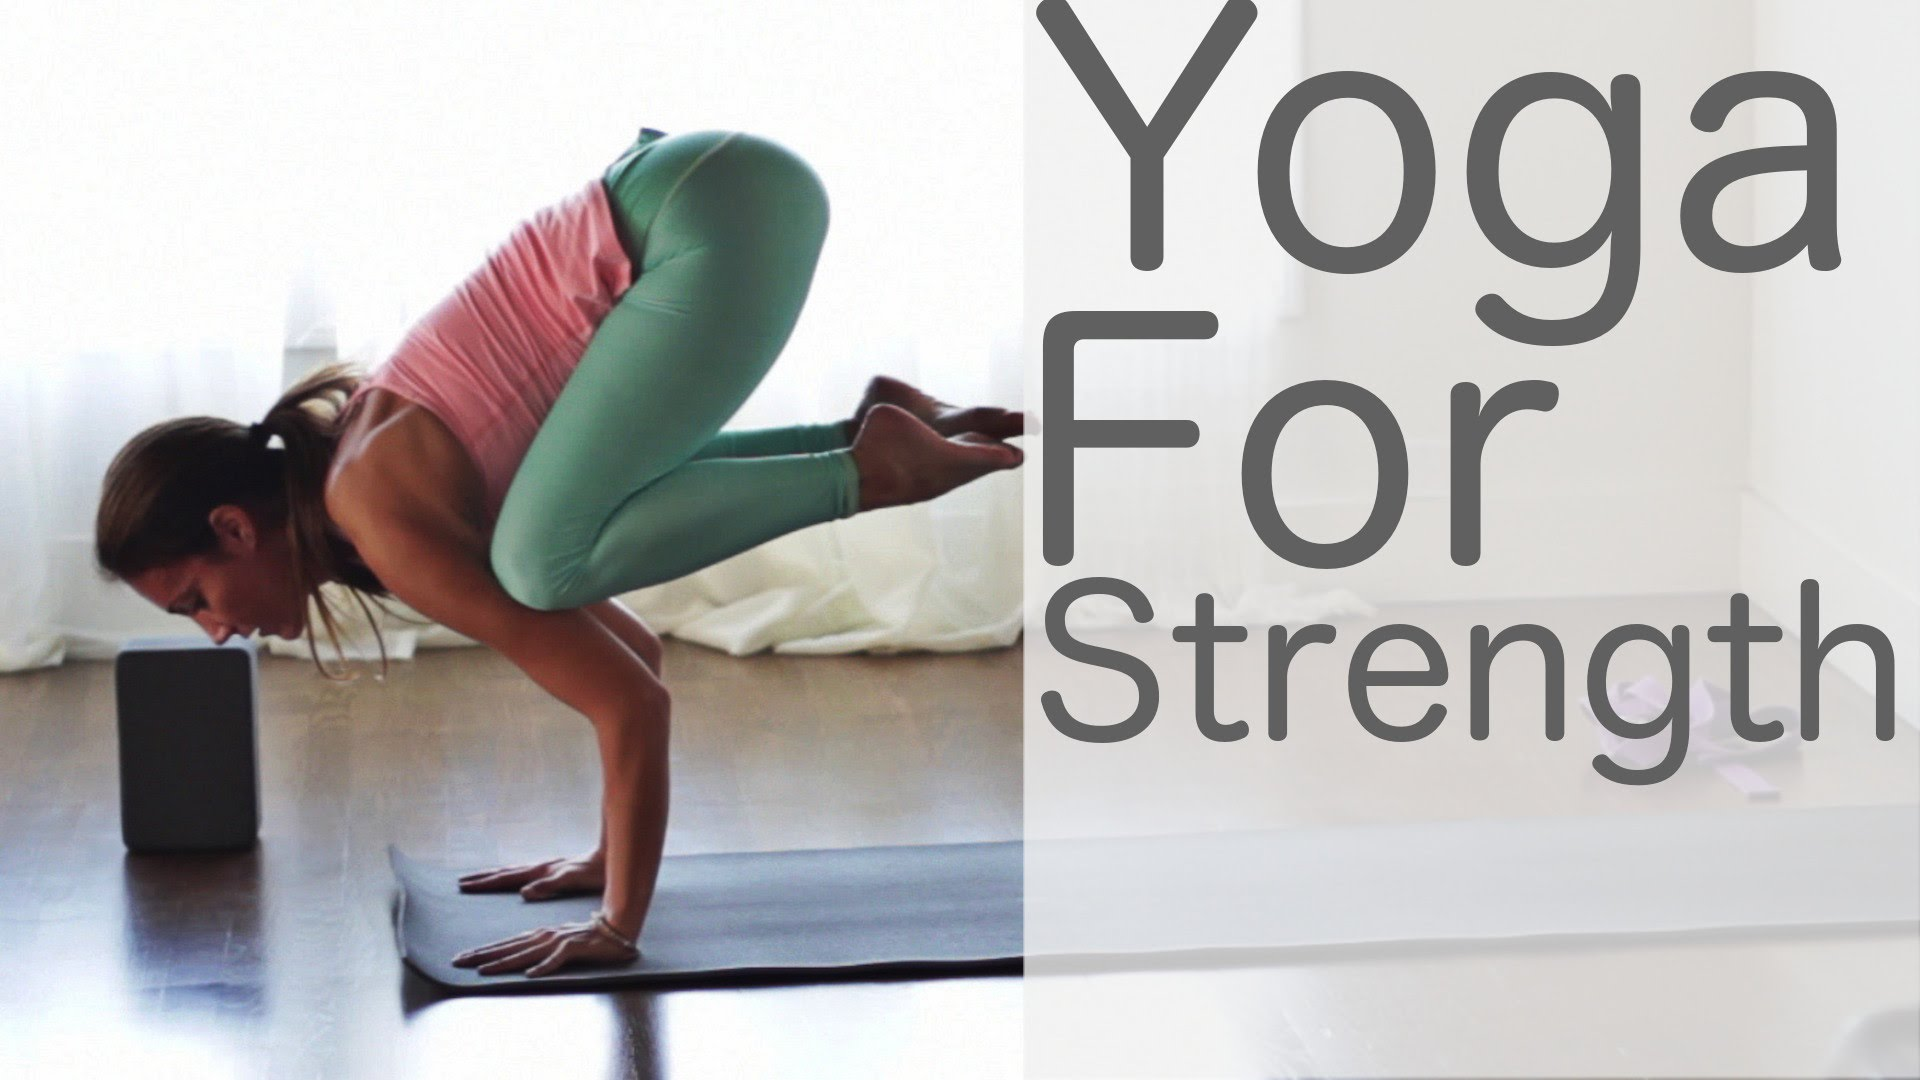 Yoga for Strength with Lesley Fightmaster and Shireen